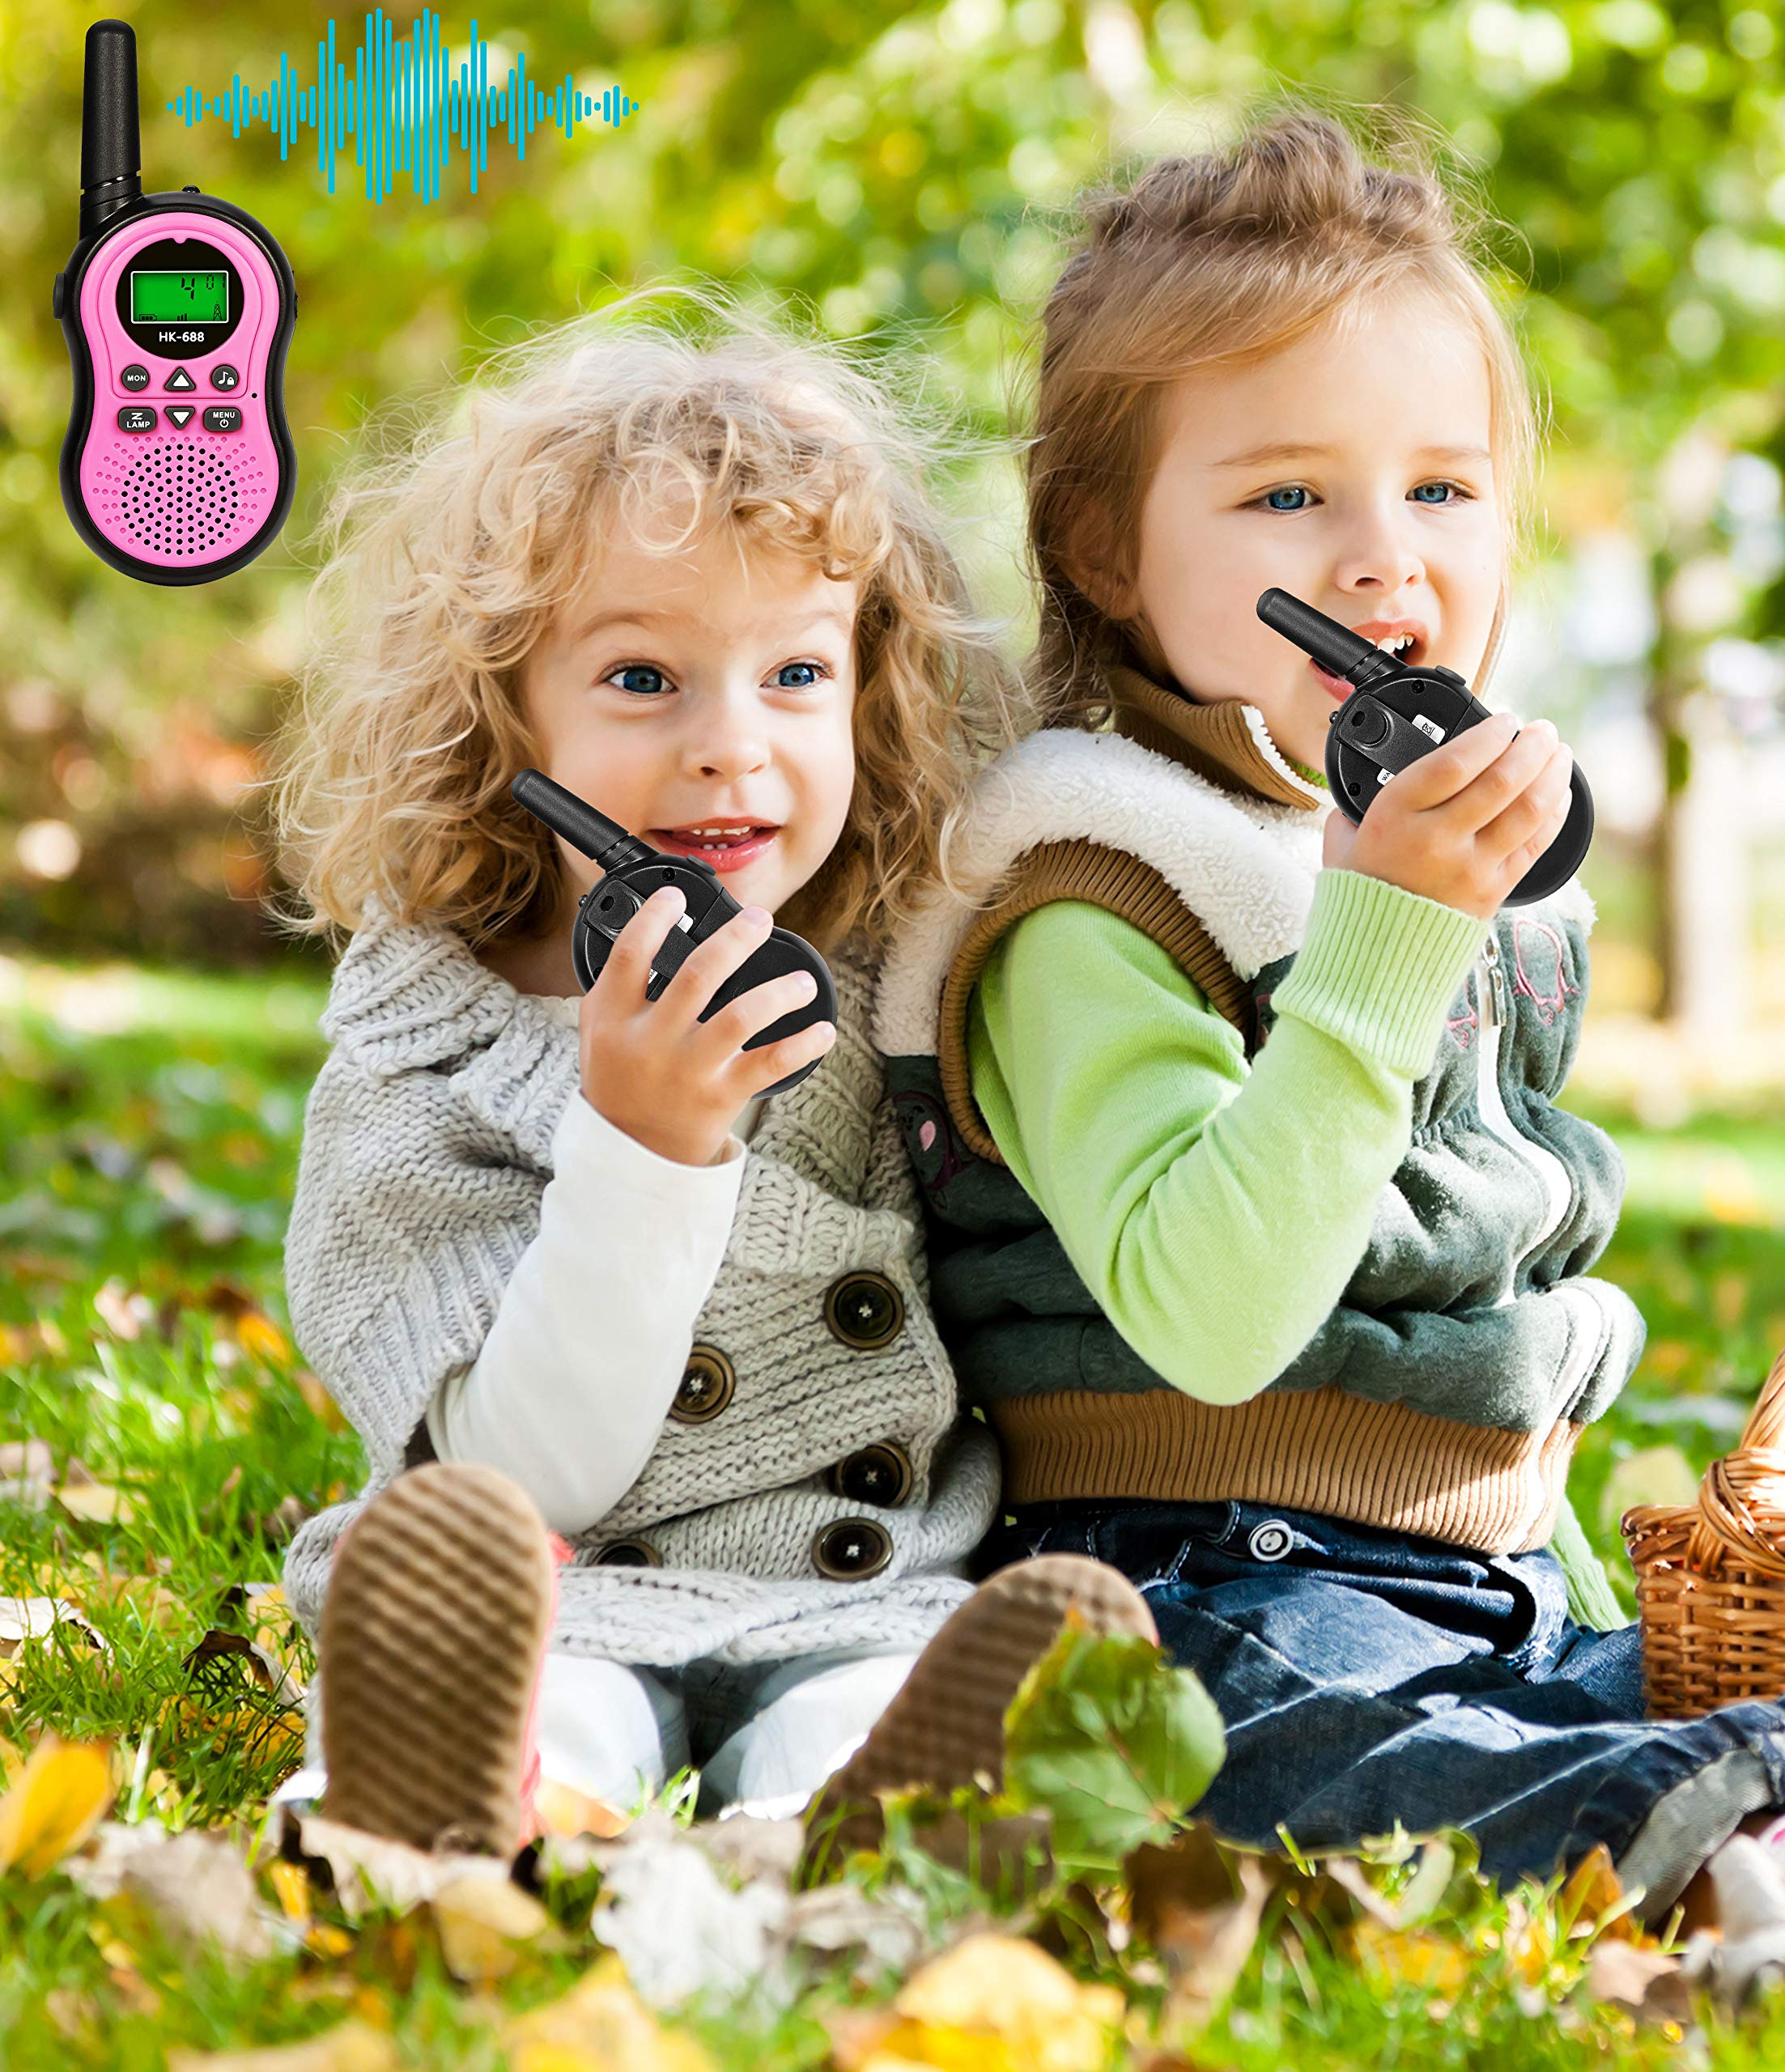 Toys for 3-12 Year Old Boys, BIBOYELF Walkie Talkies for Kids Toys for 3-12 Year Old Girls,5-9 Year Old Girl Birthday Gift,Outside Toys for Kids Outdoor Play,HK-688 1Pair(Pink) by BIBOYELF (Image #2)